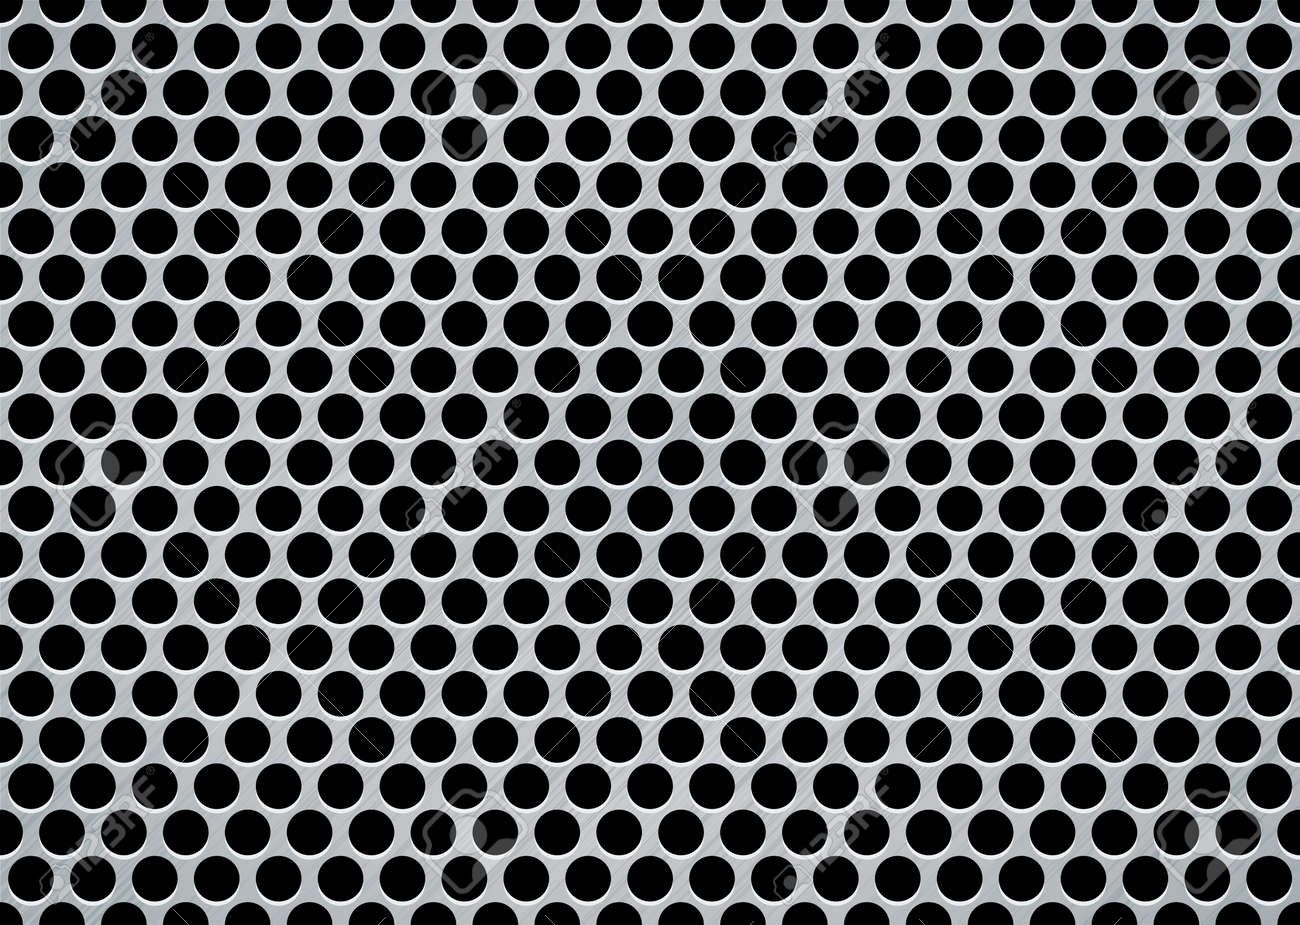 brushed metal aluminum background with large holes in mesh pattern Stock Vector - 5686045